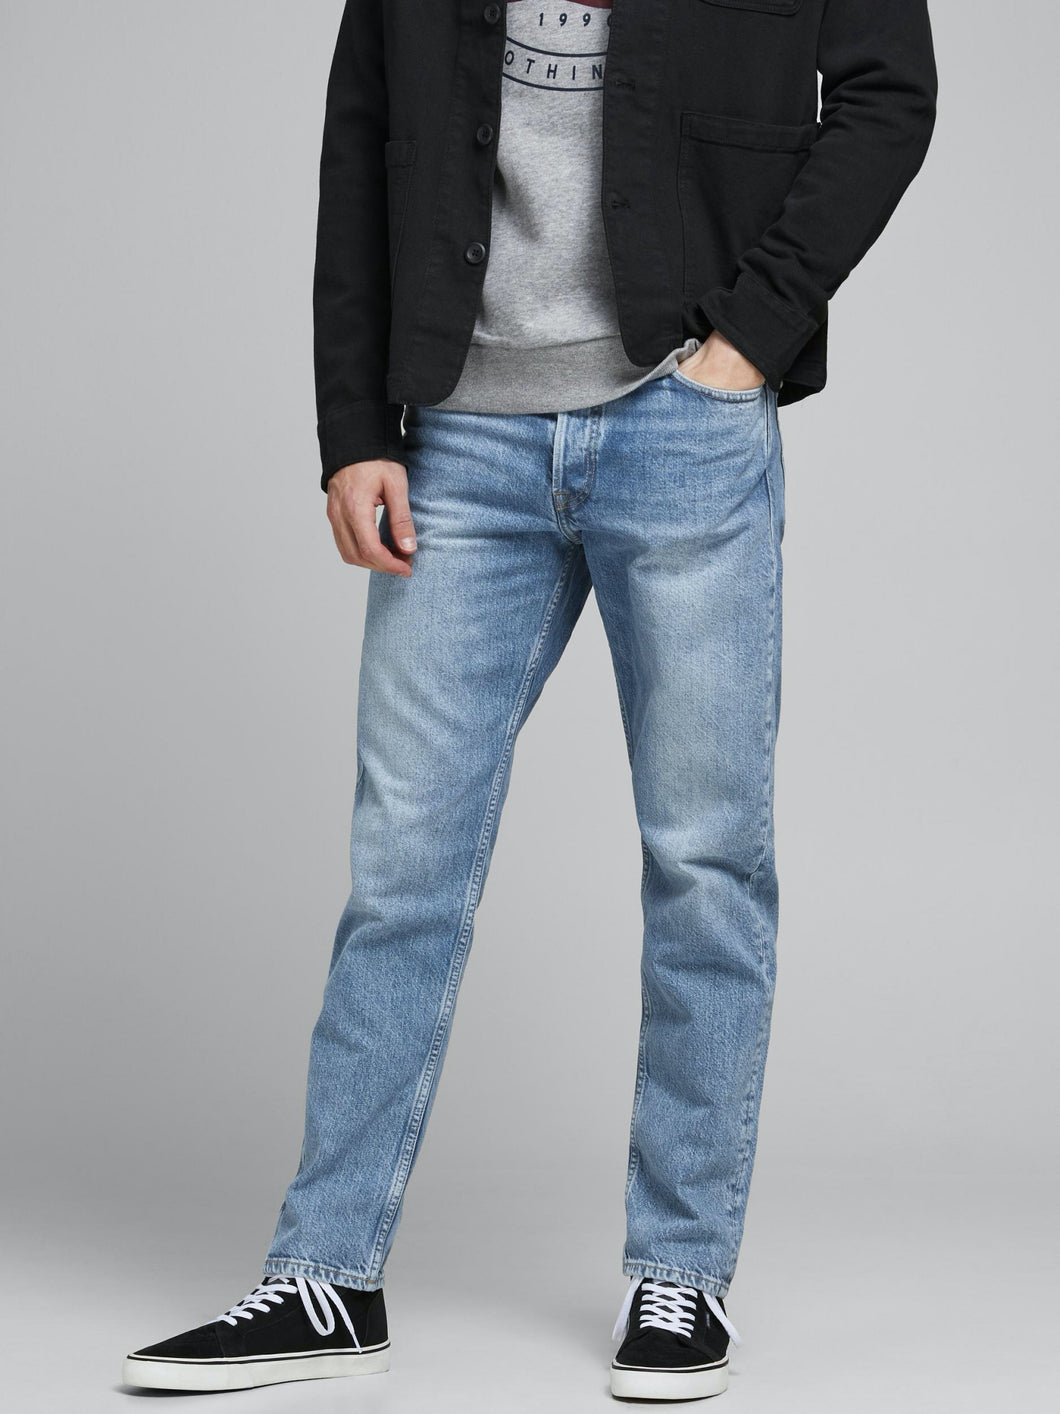 Chris Original 920 Jeans - 28 / 30 - JEANS. 12193398, BLÅ,